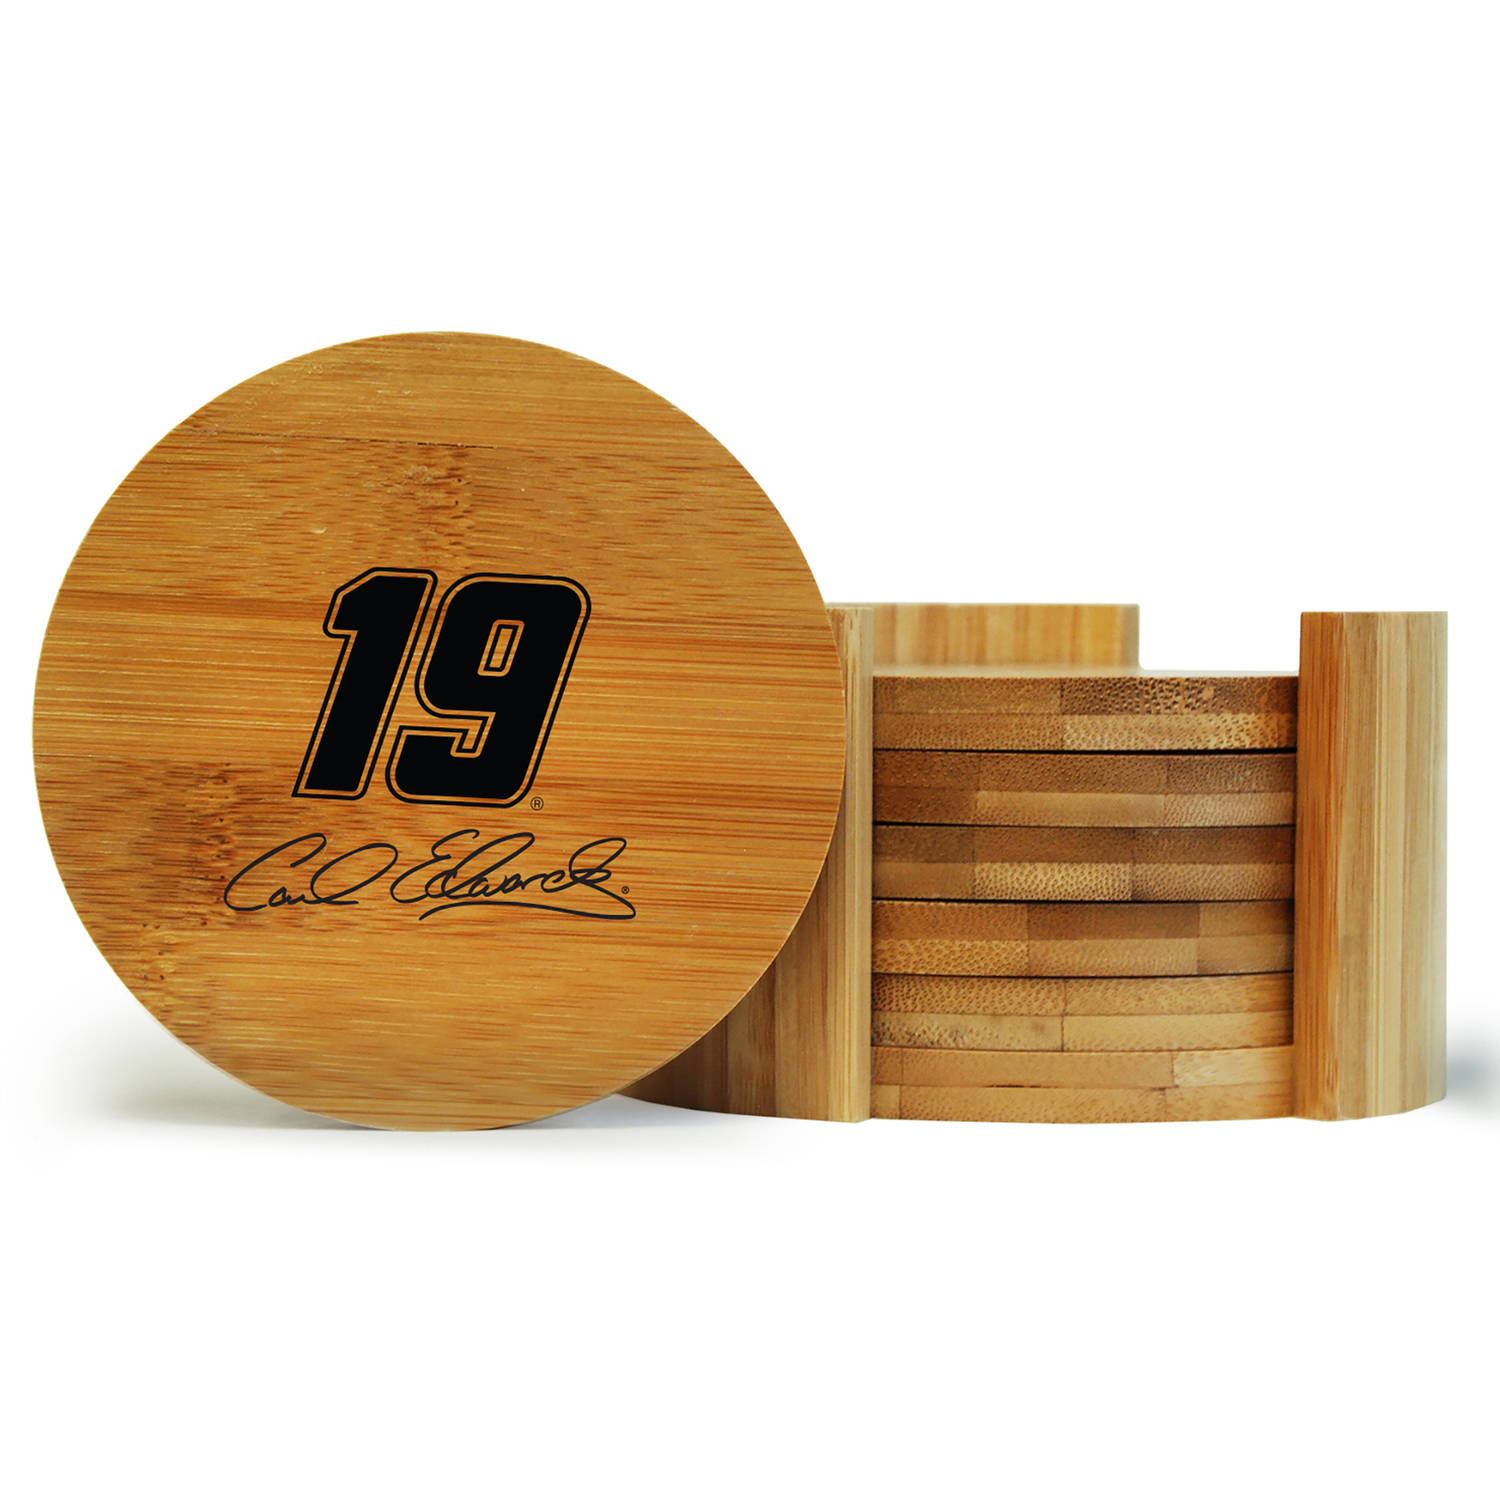 Carl Edwards Coasters